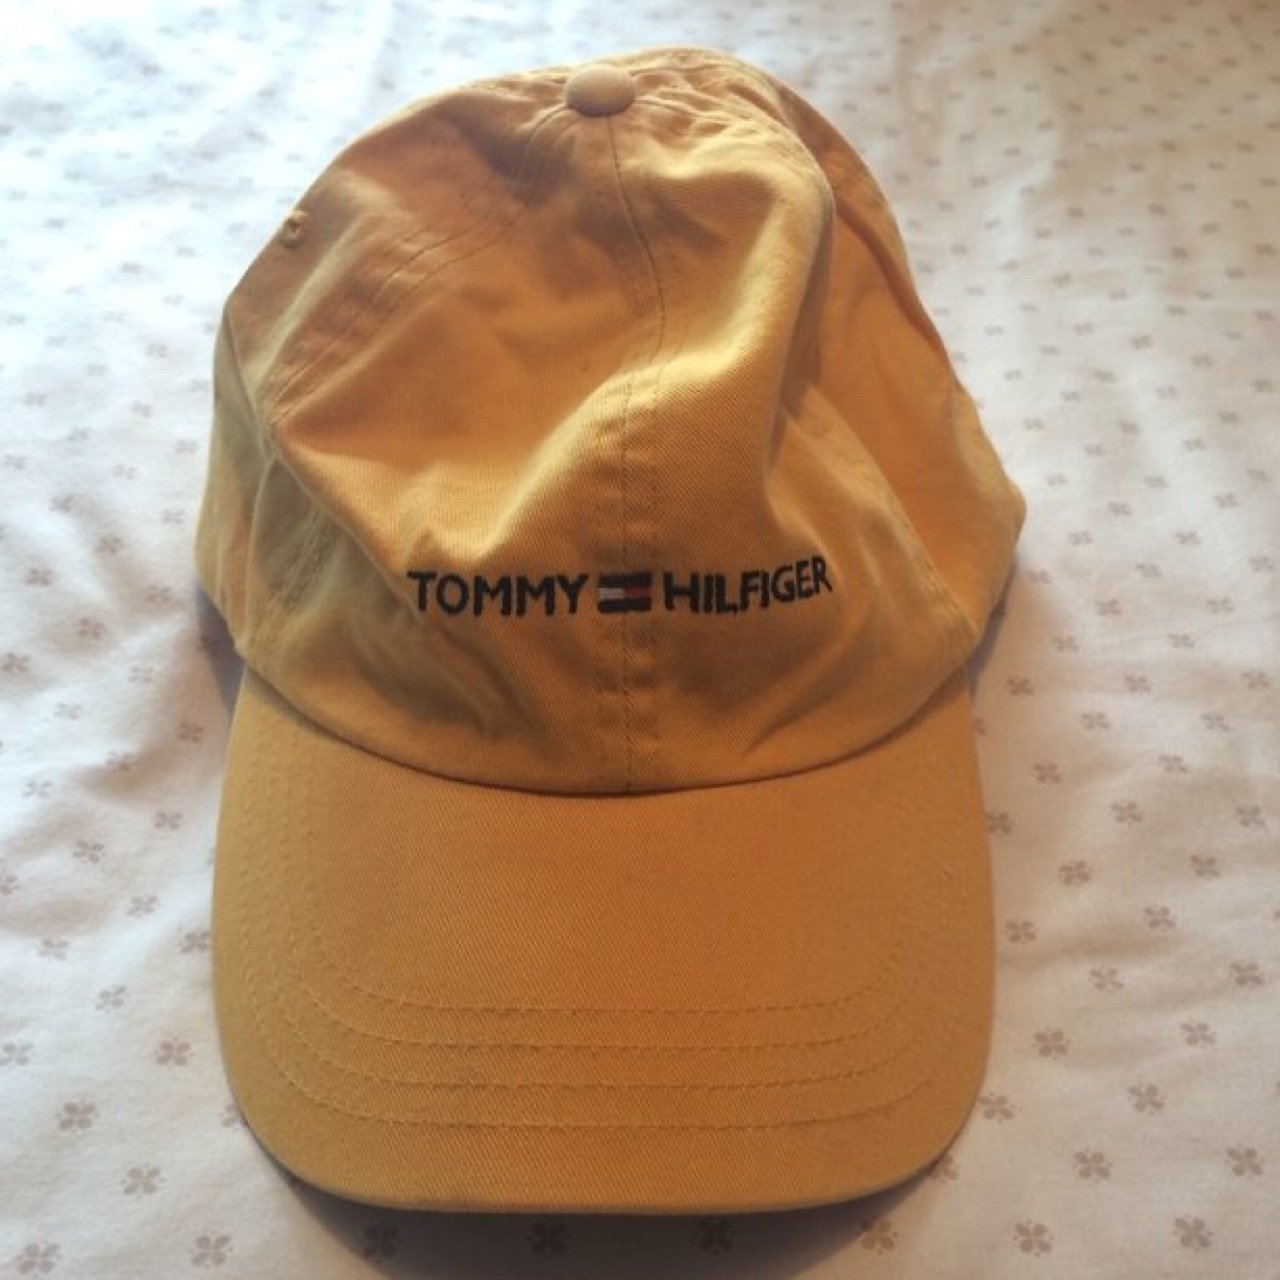 Yellow Tommy Hilfiger spell out hat   Tommy Hilfiger cap - a - Depop 41b62340547